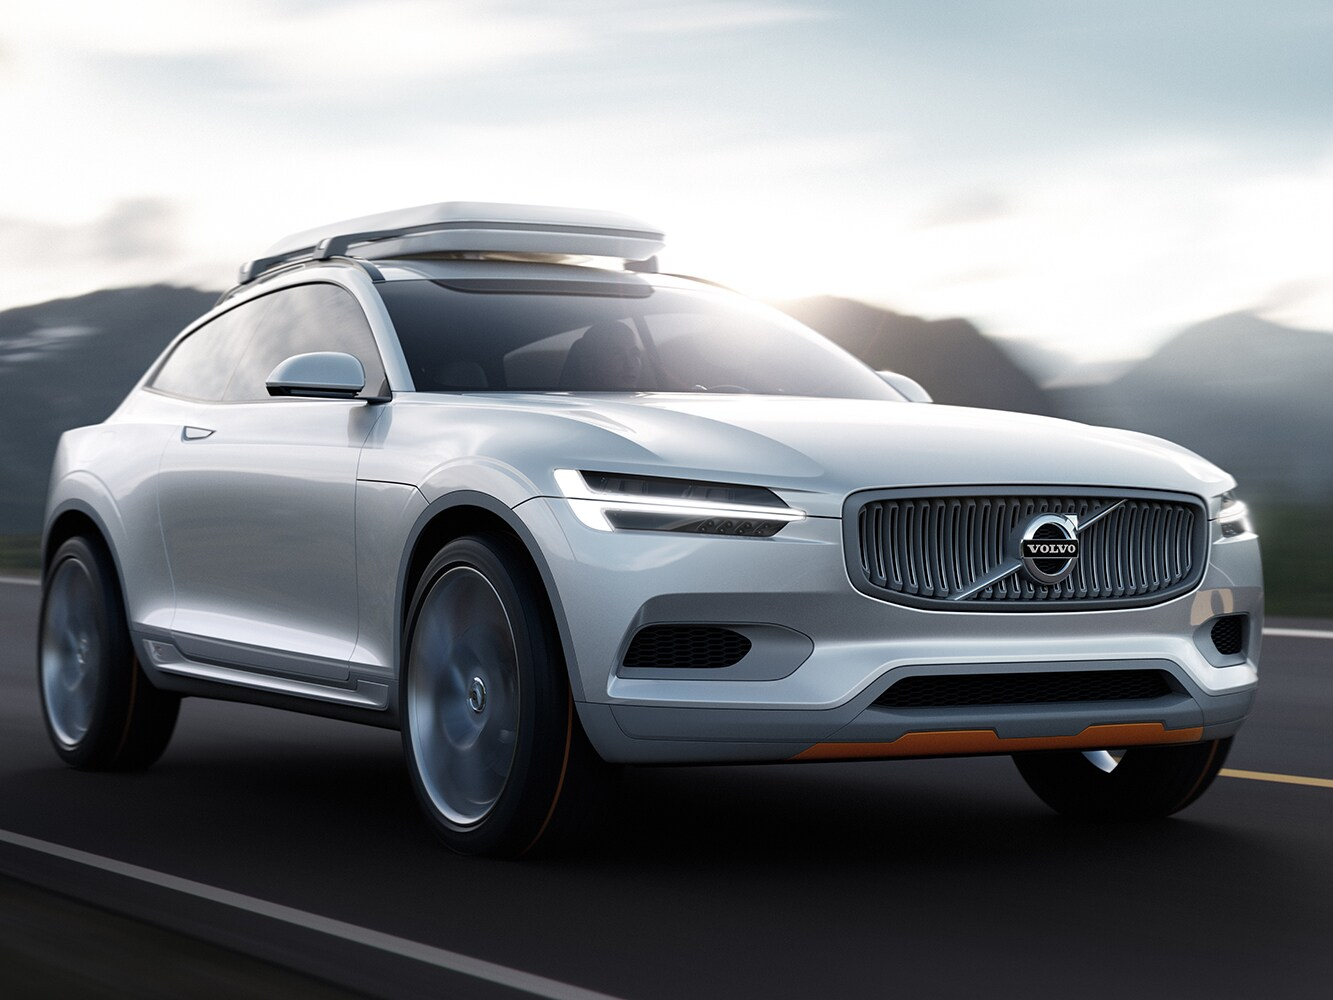 The Volvo Concept XC travels along a freeway with mountains behind it.